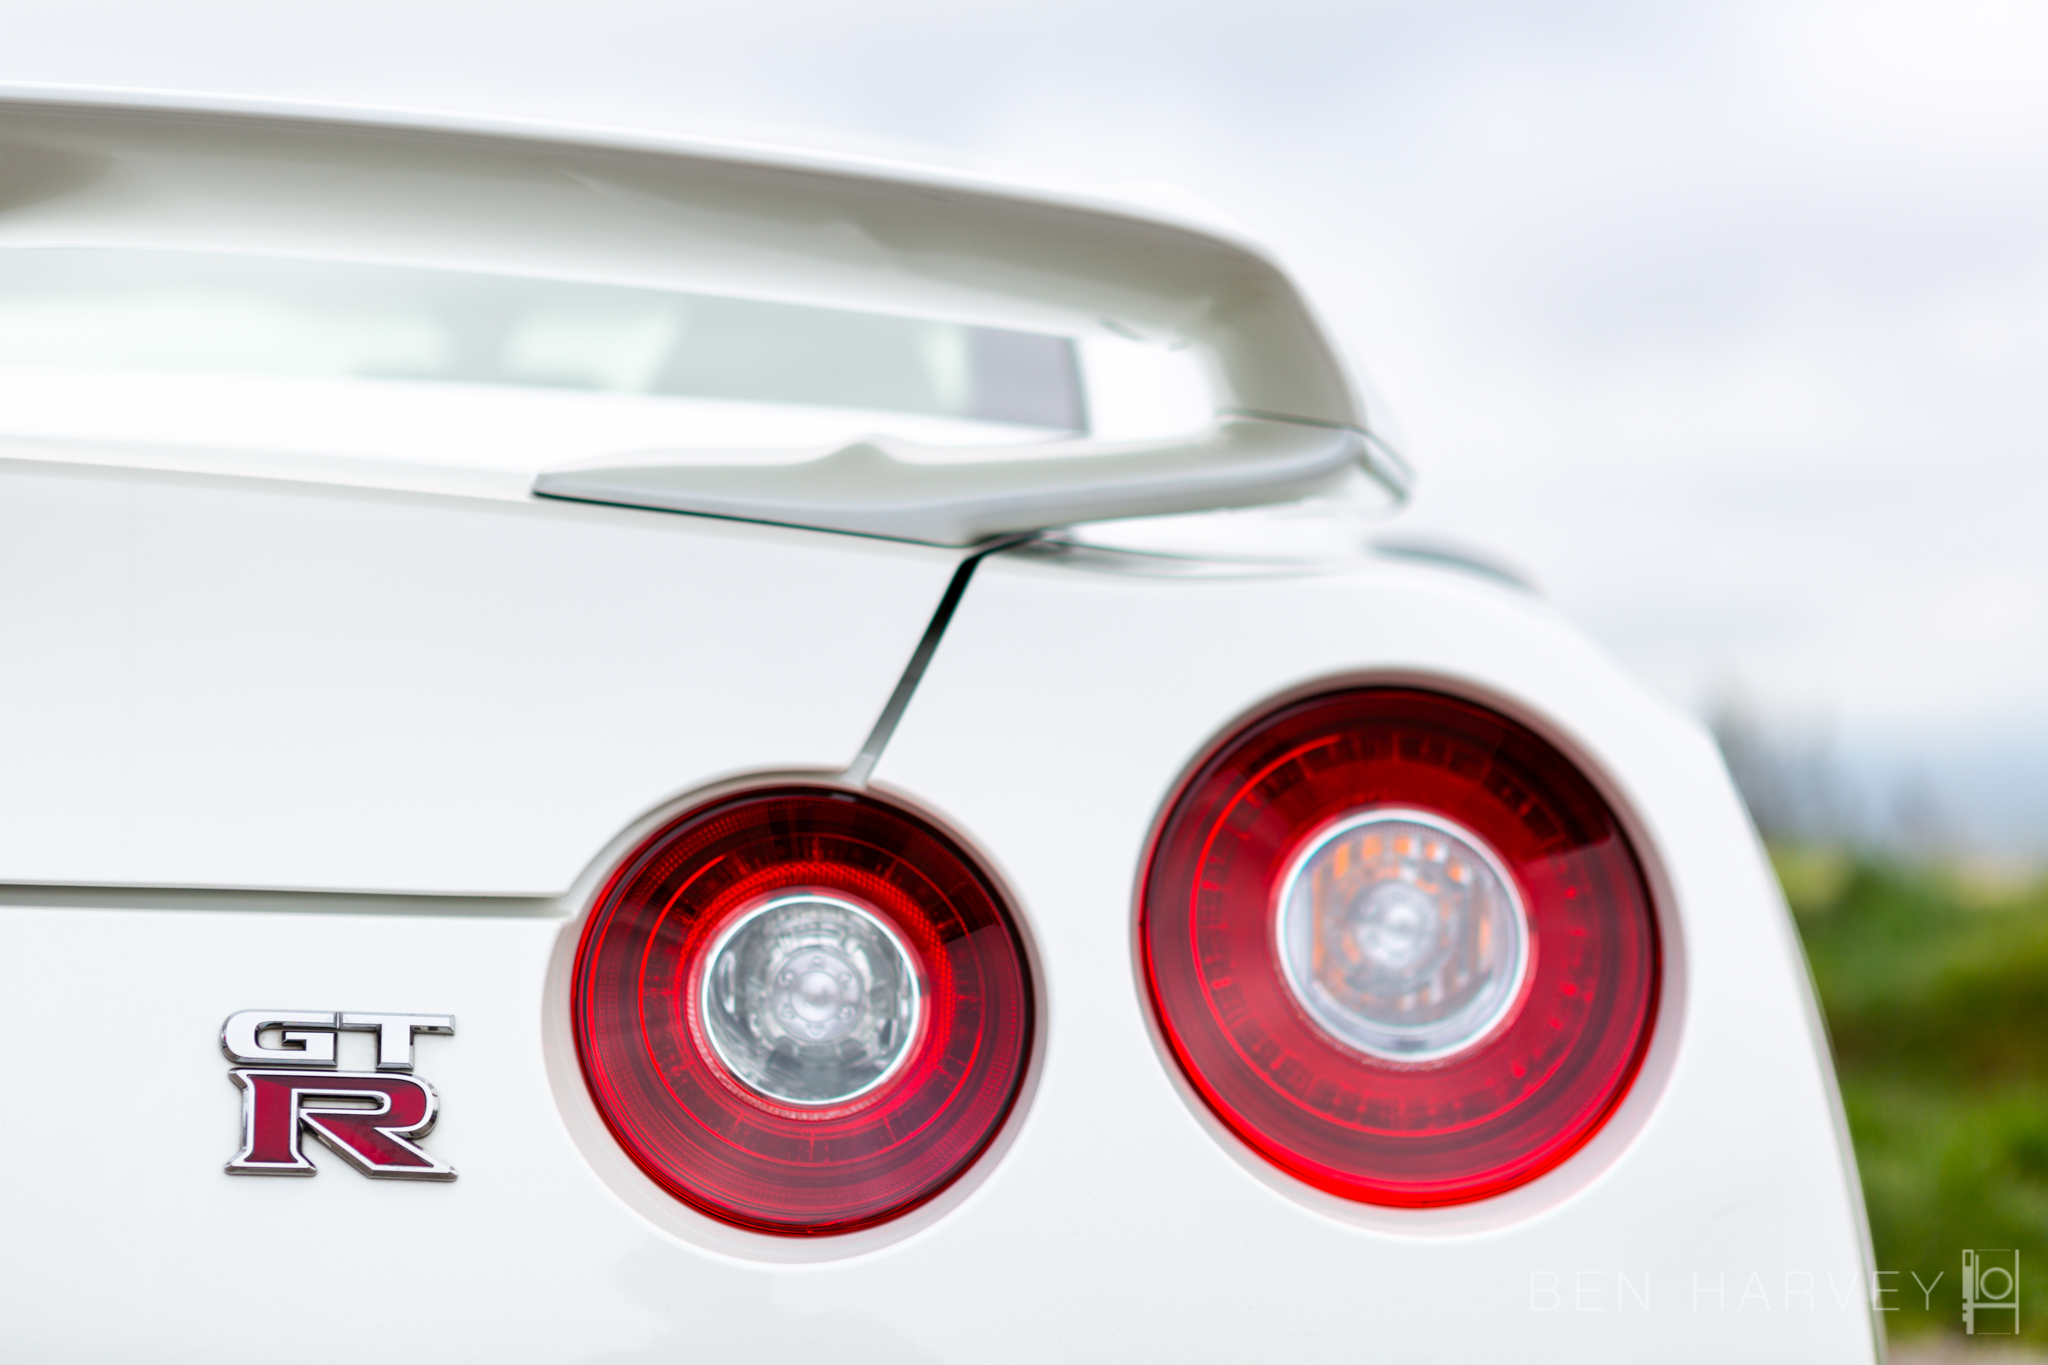 The iconic rear tail lights of a Nissan Skyline